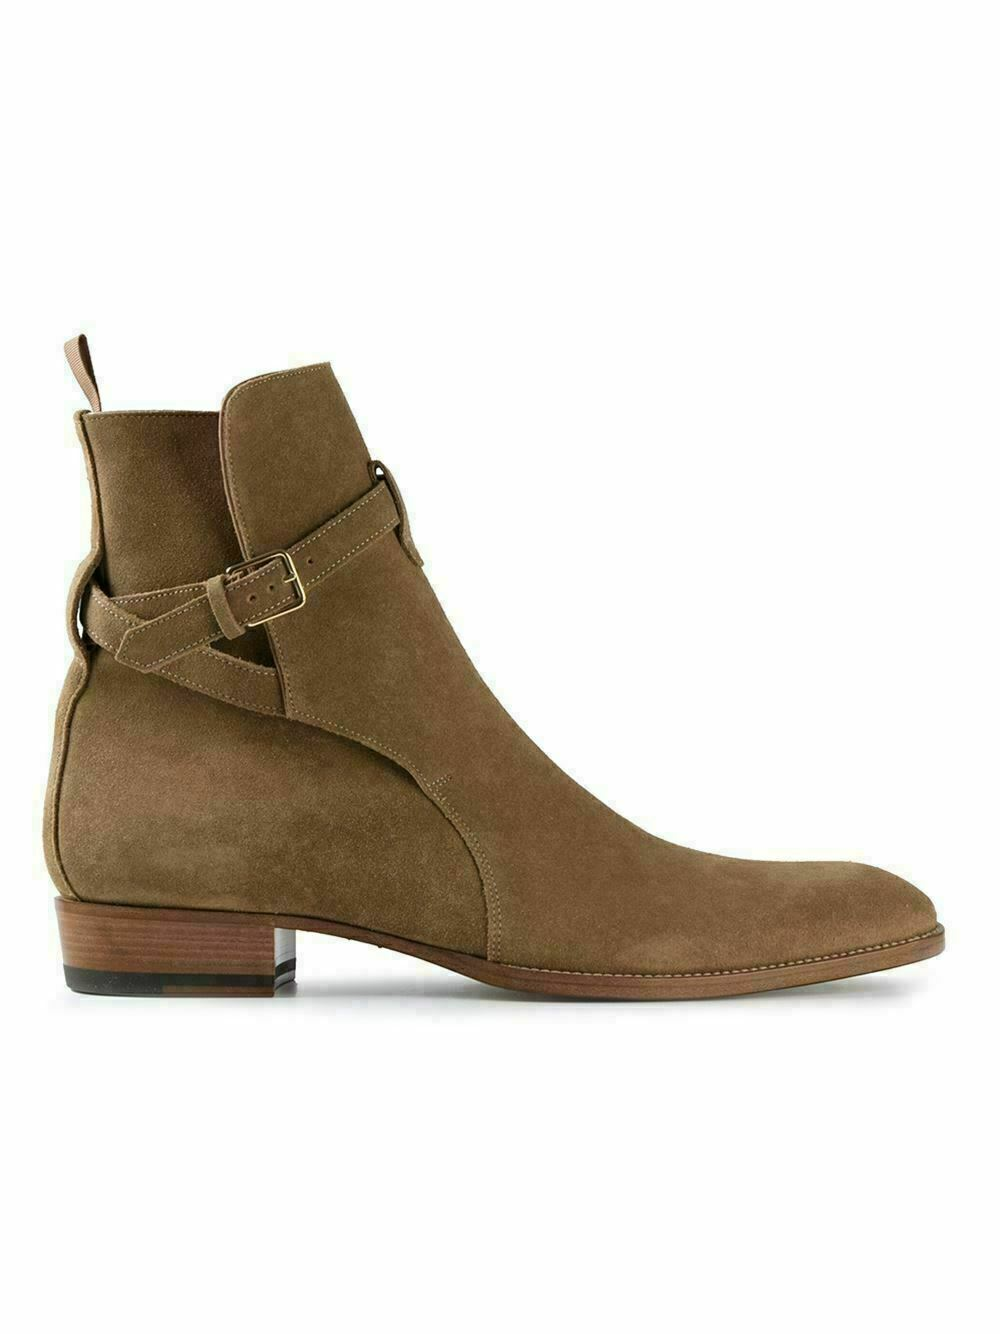 NEW-Handmade Men's Beige Suede Leather Jodhpurs Ankle High Buckle Leather Boots